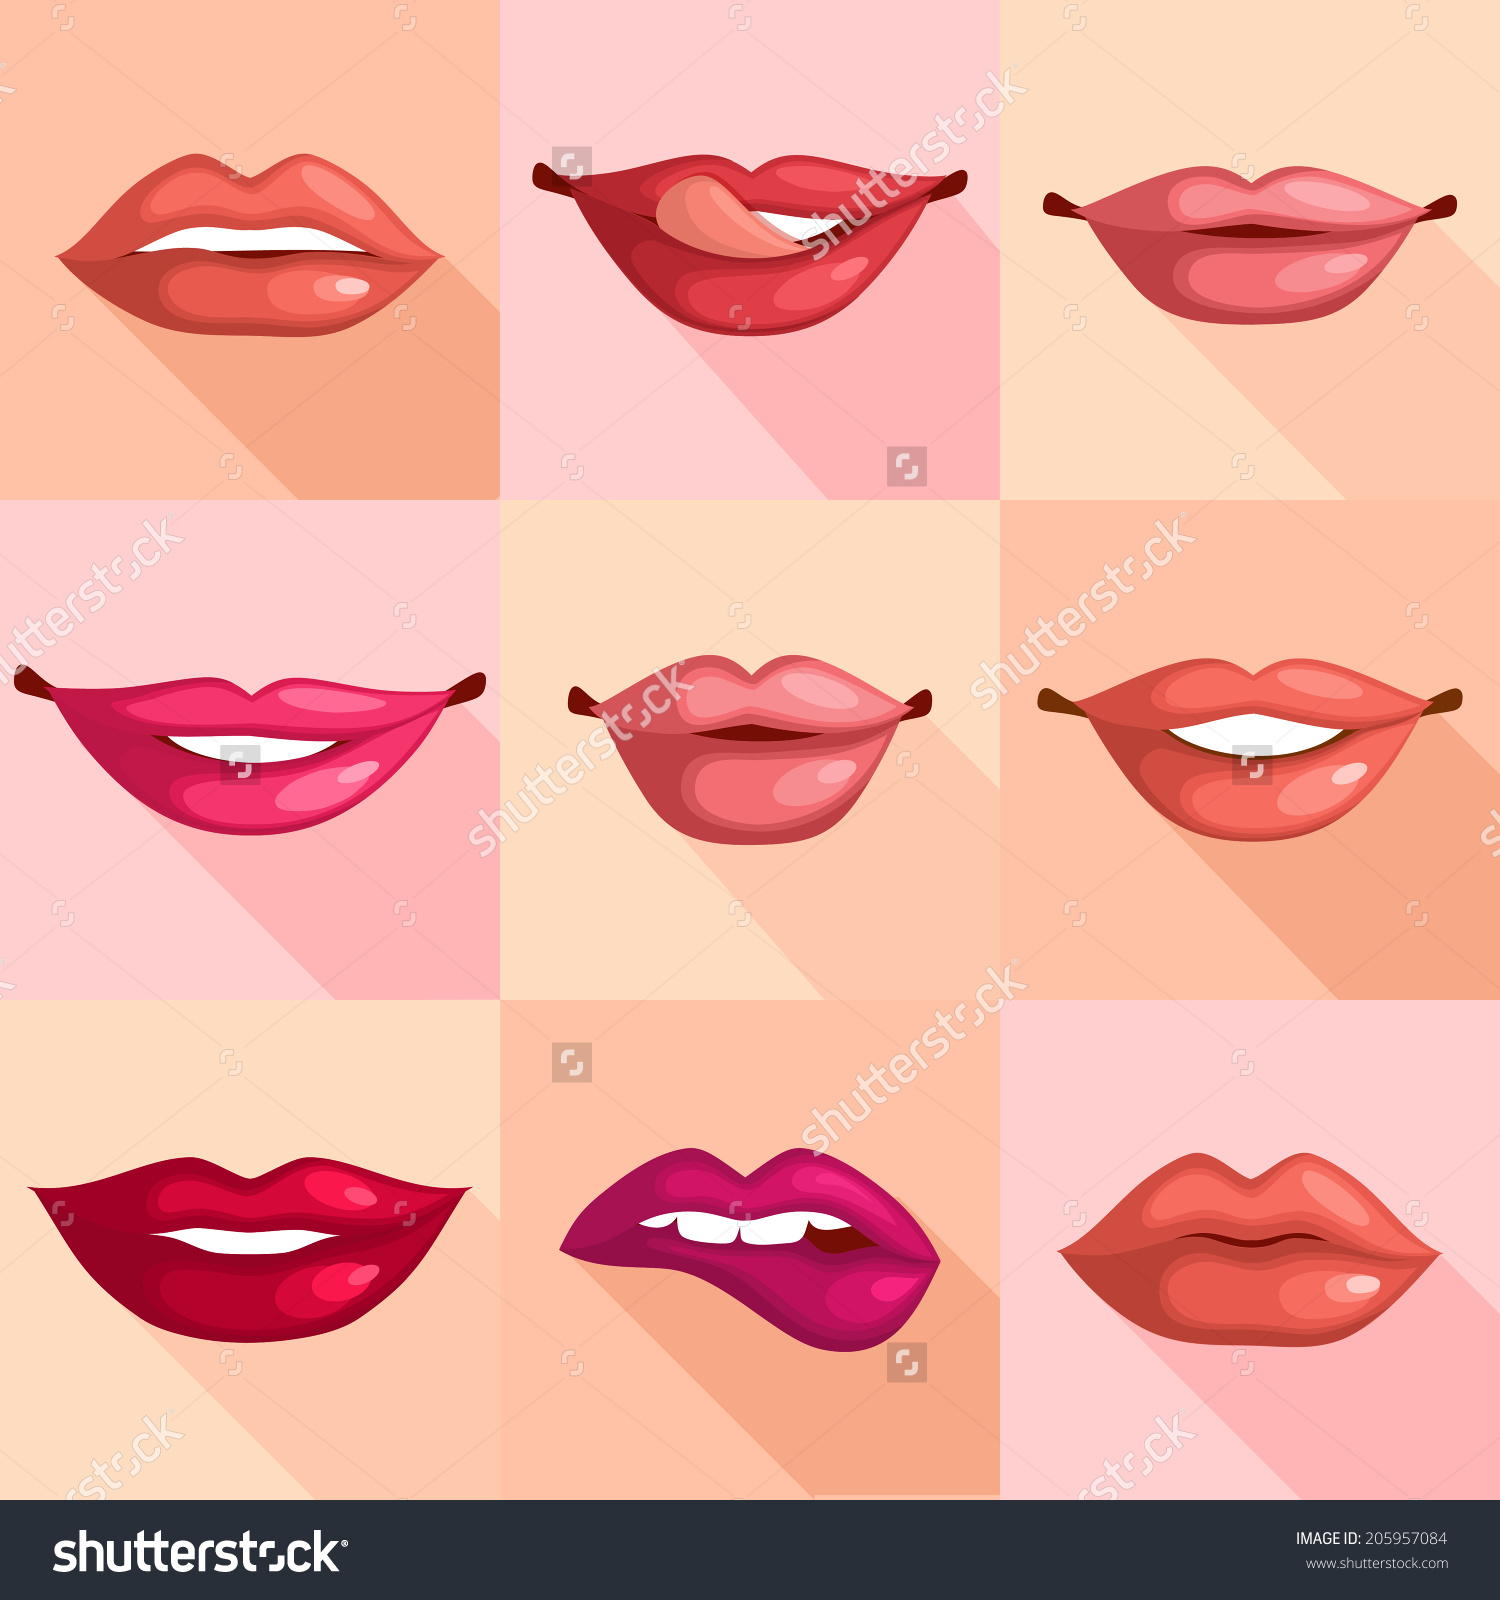 1500x1600 Smiling Lips Drawing Drawn Smile Closed Mouth Smile